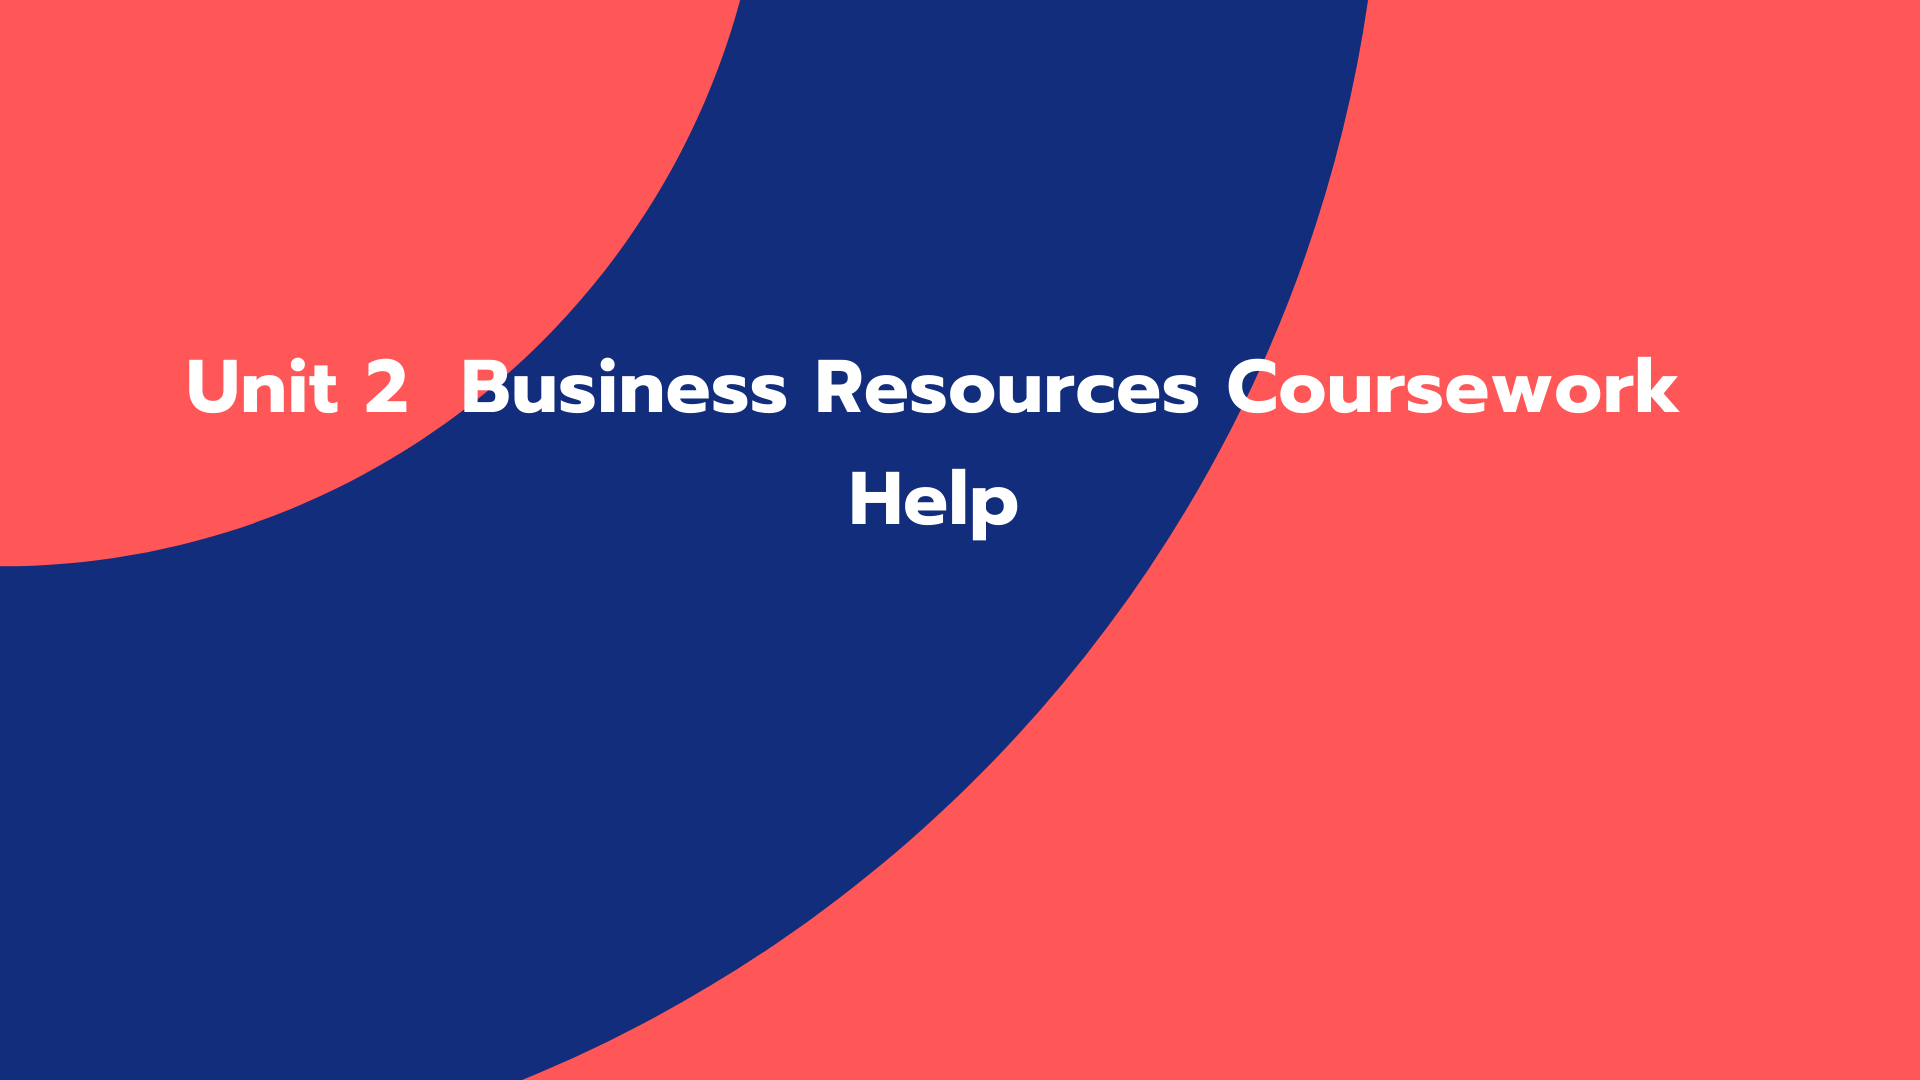 Unit 2 Business Resources Coursework Help